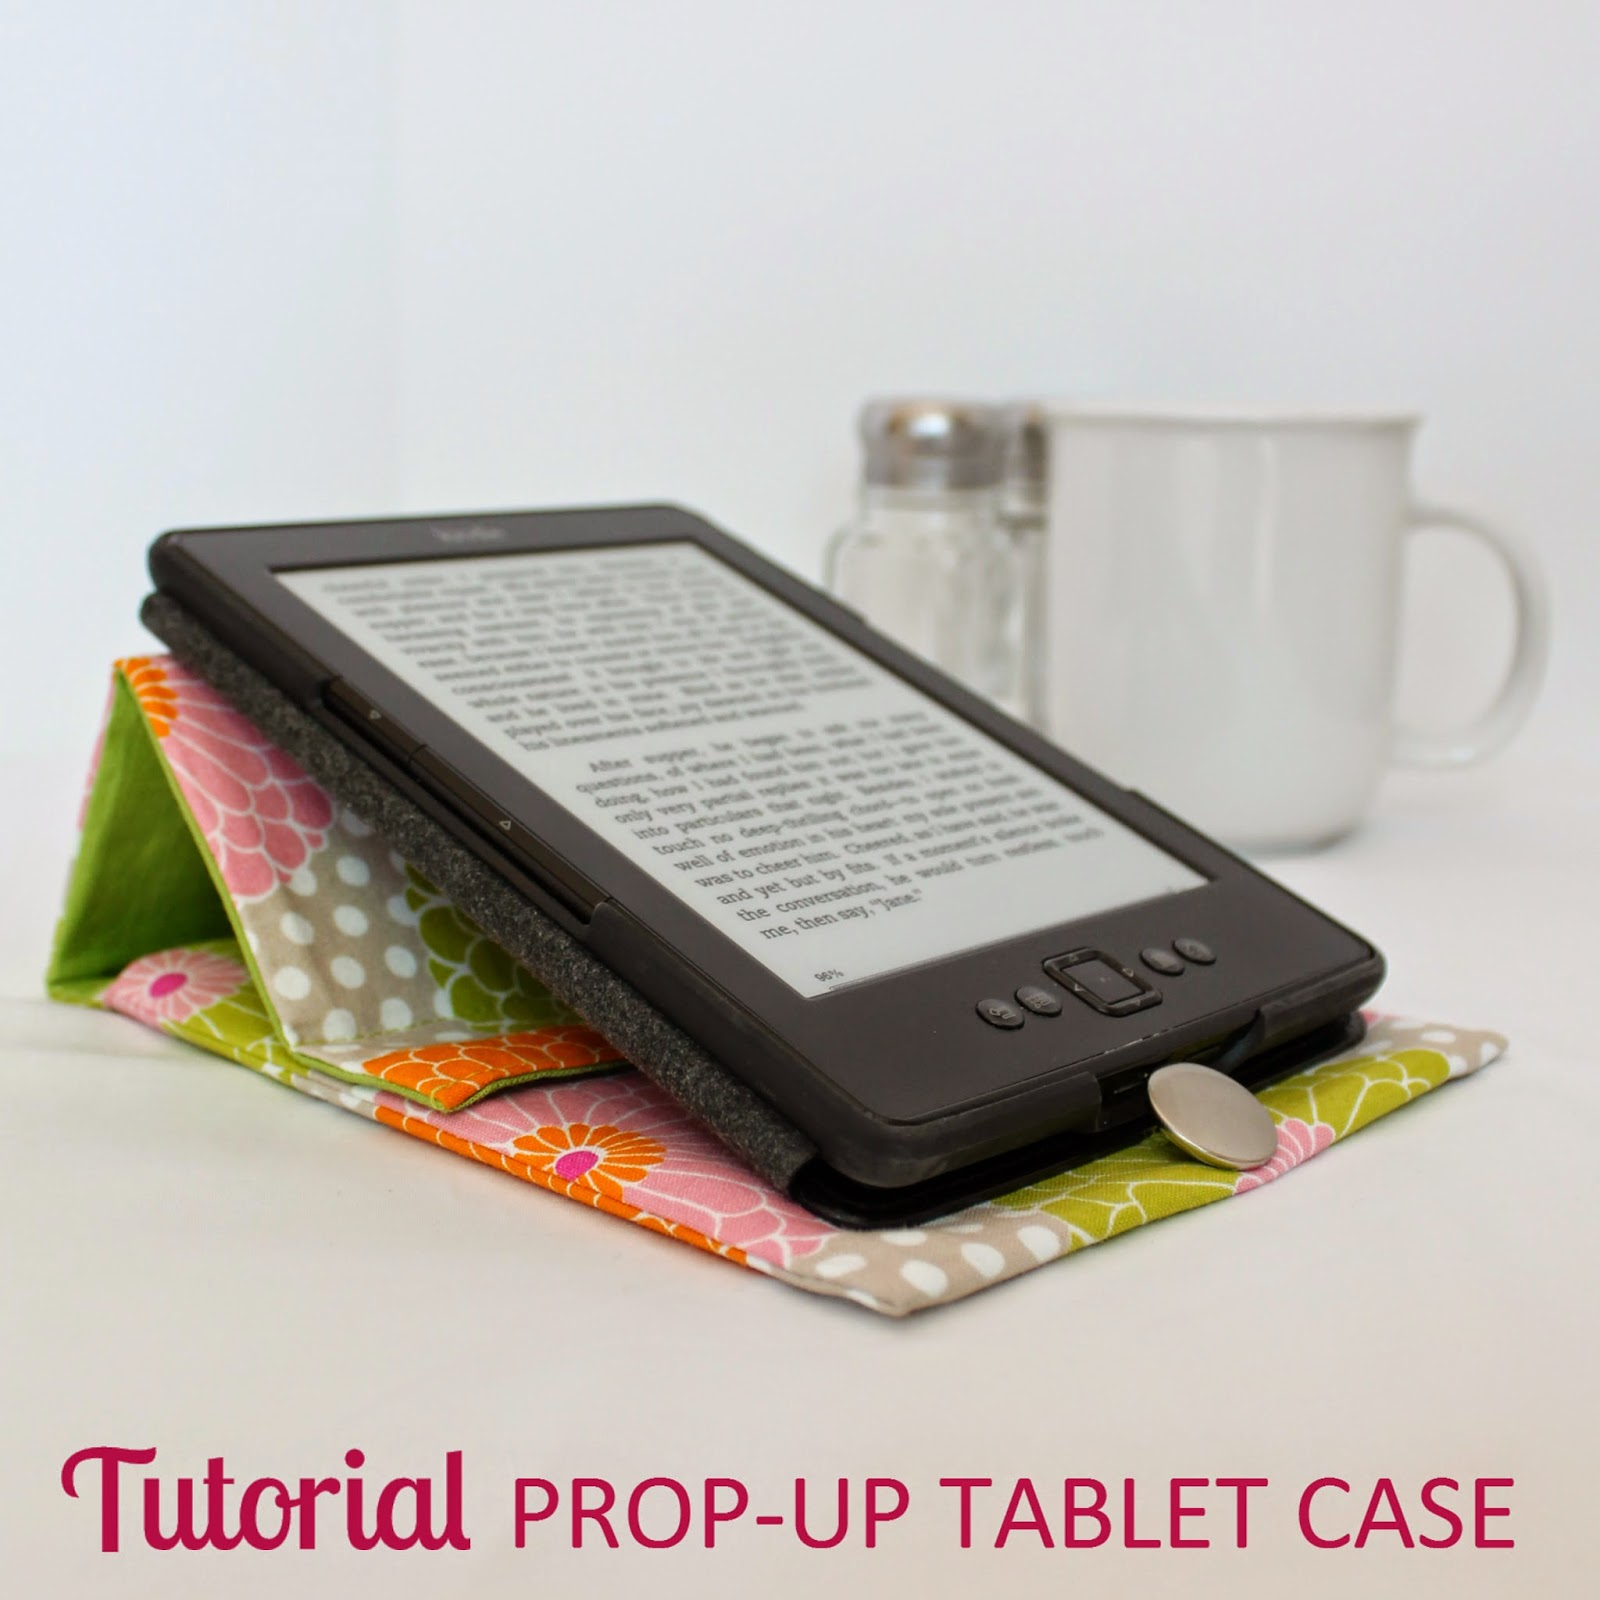 TUTORIAL: Prop-Up Tablet Case | Step-by-step directions how to sew an envelope case custom fit for any size tablet with a prop-up stand built right into the flap. | The Inspired Wren